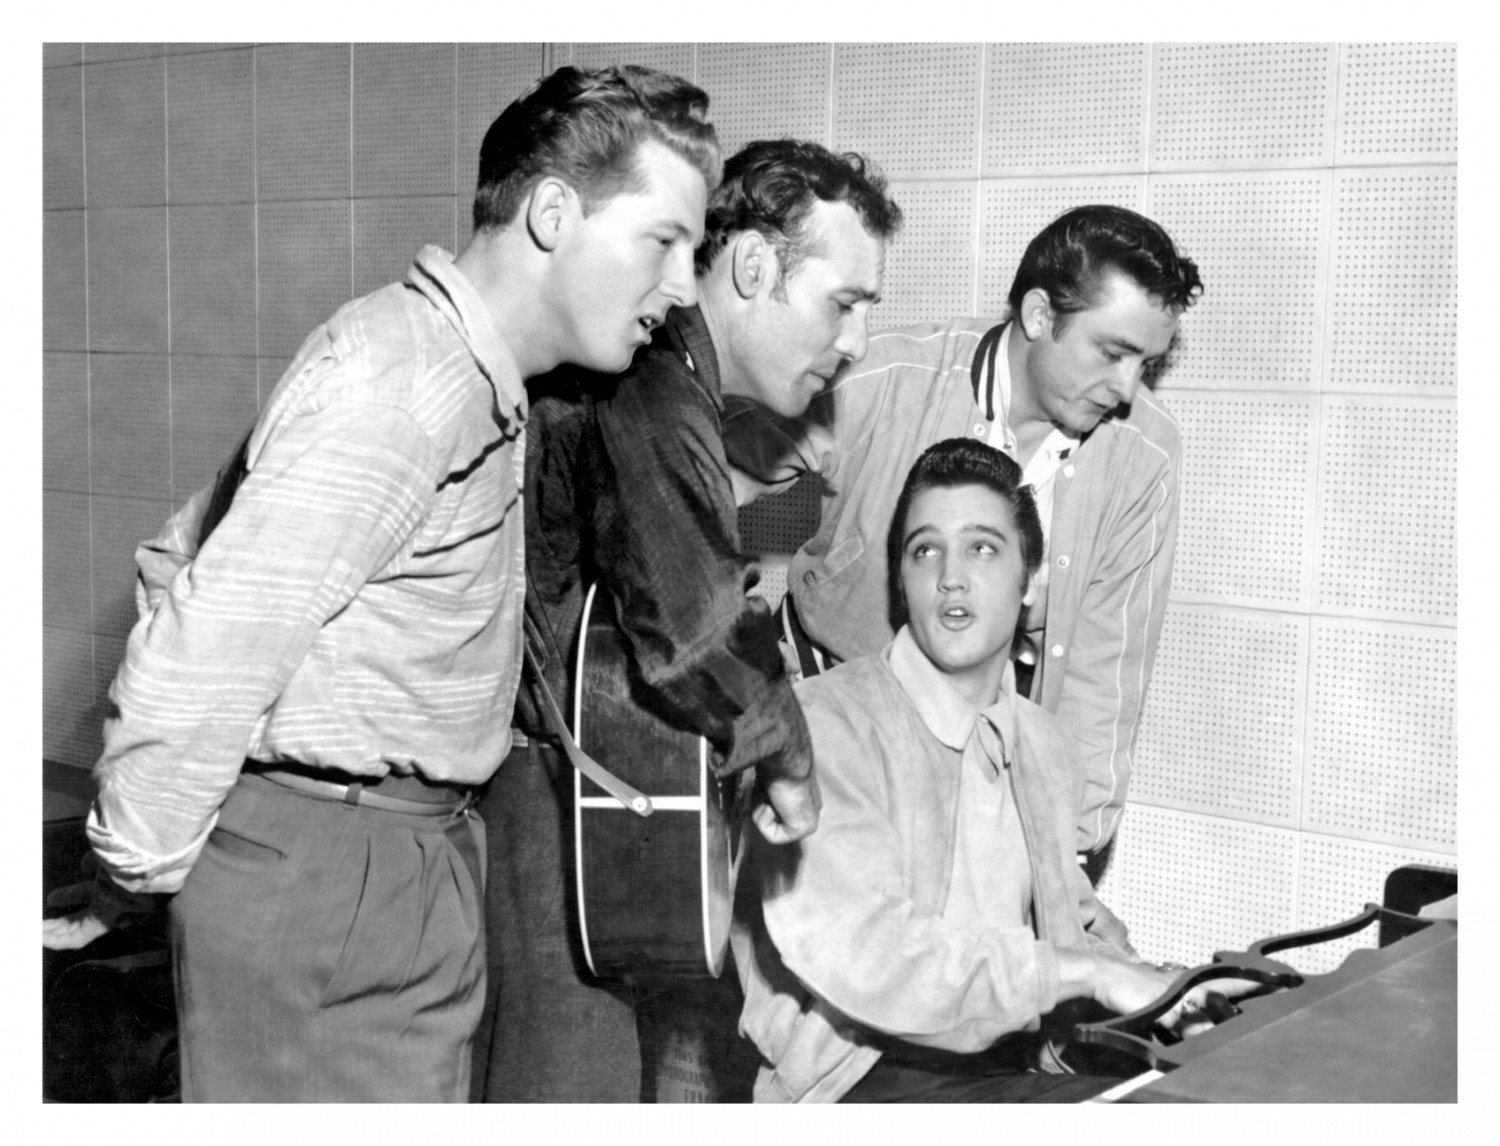 George Pierce - Sun Records - December 4, 1956 (02a)